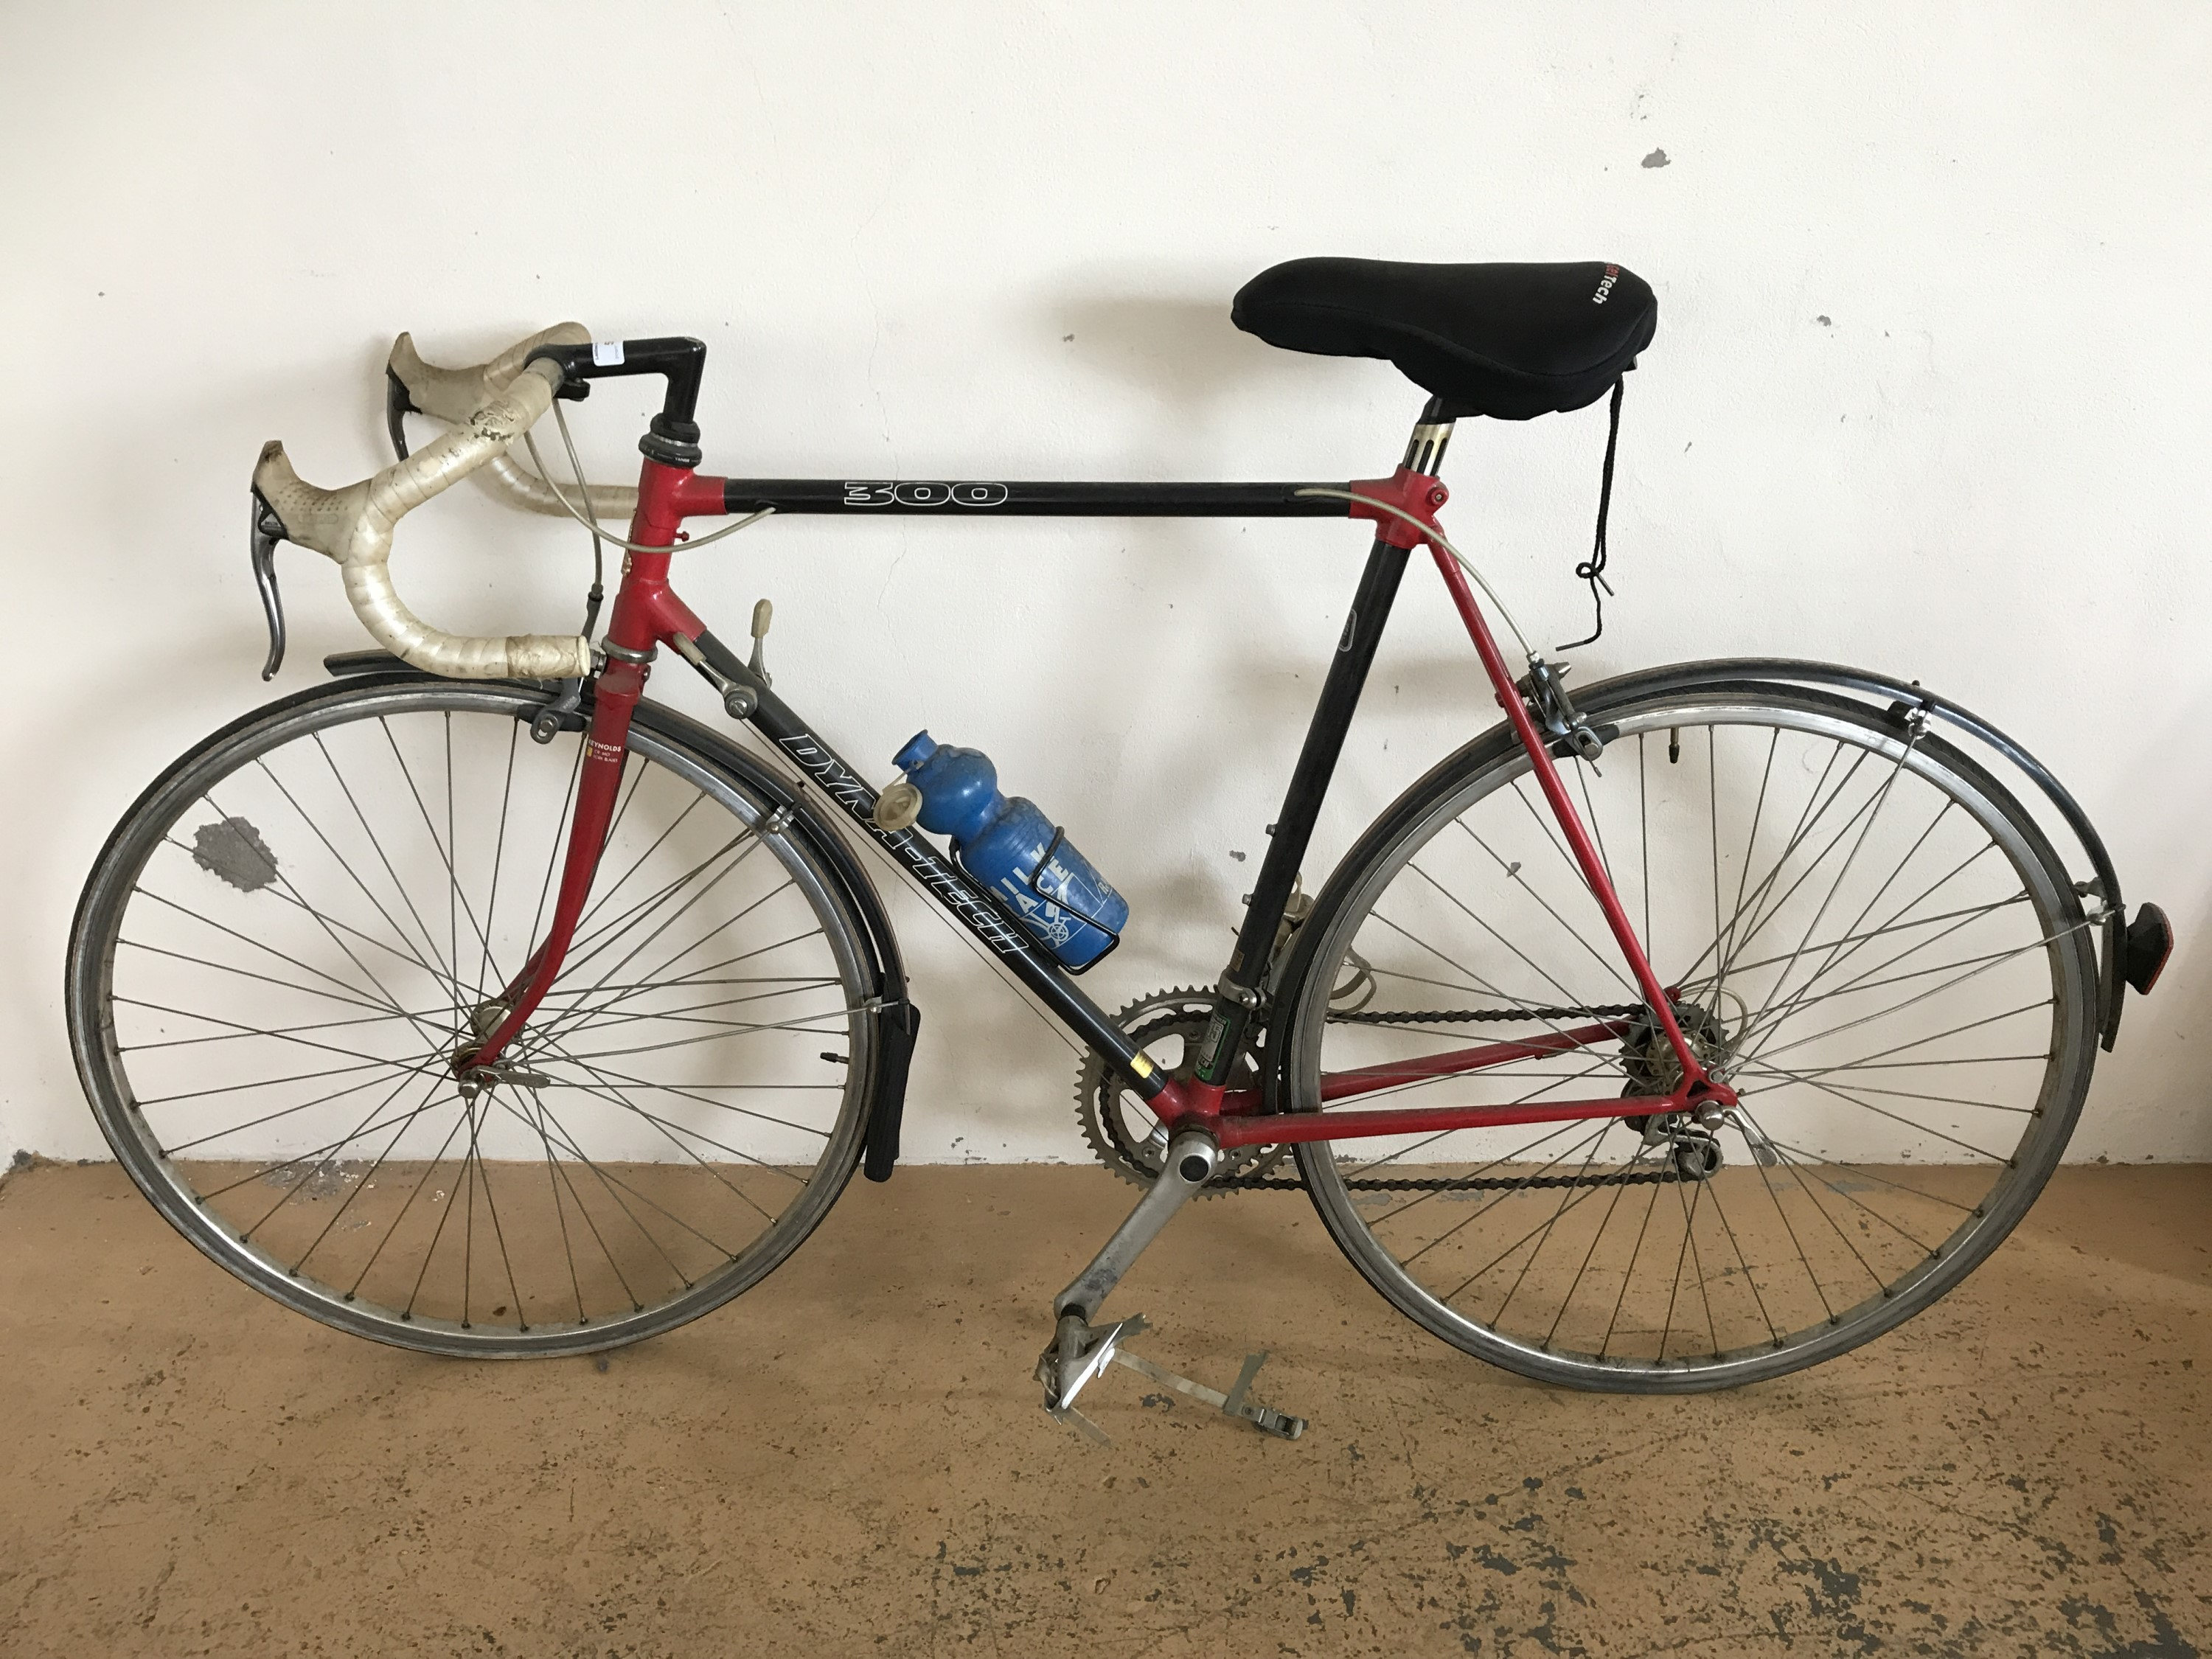 Lot 59 - A Raleigh Special Products Division Dyna-Tech 300 racer bicycle, circa 1970s-1980s